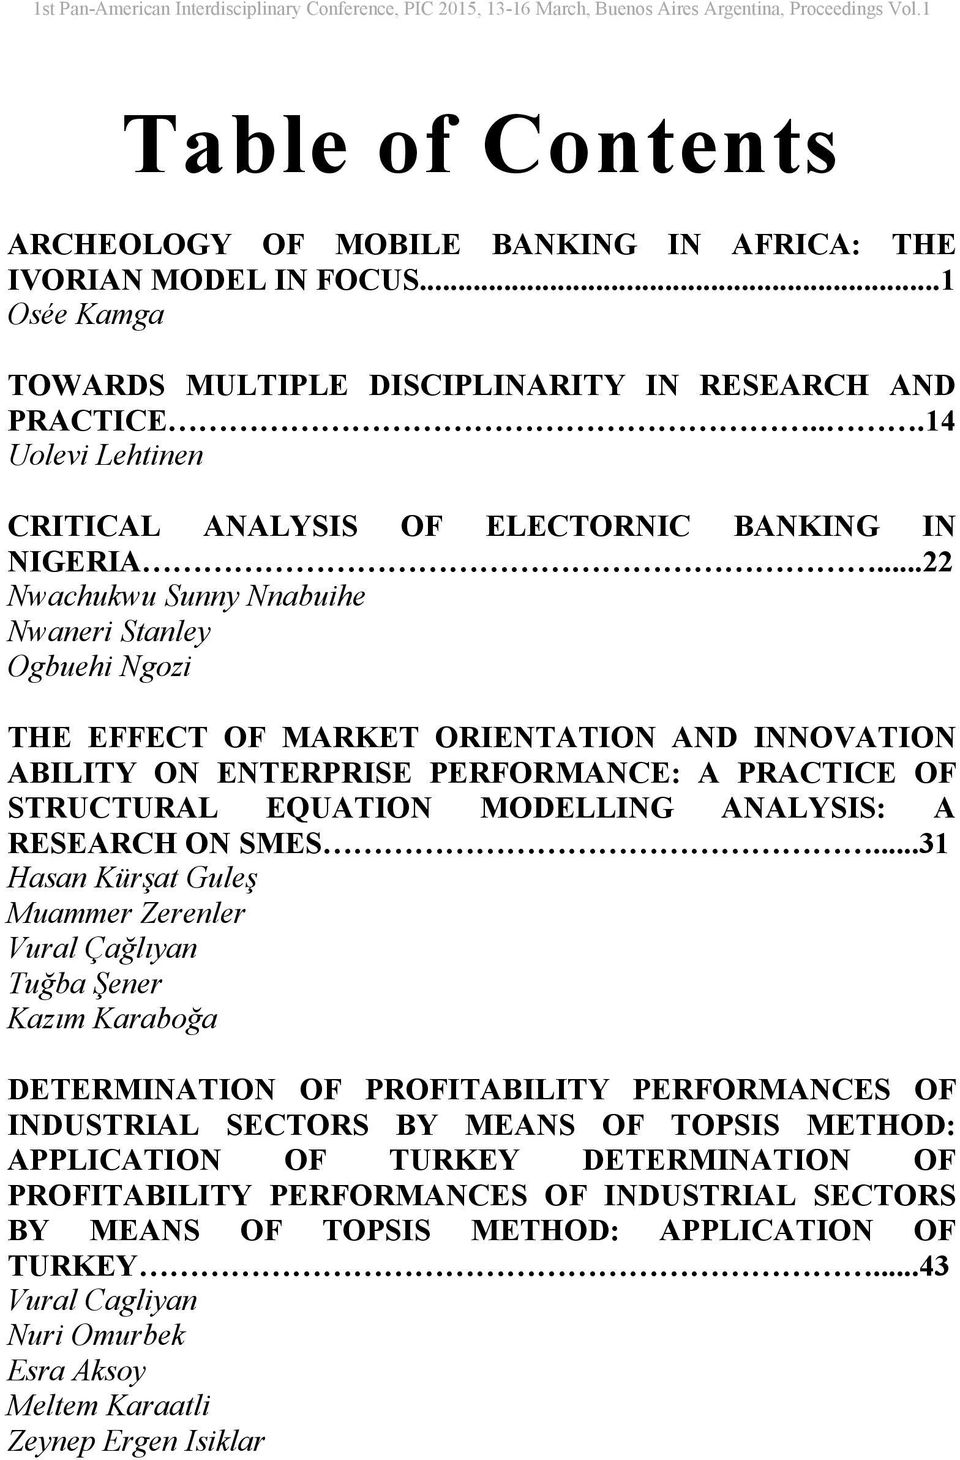 ..22 Nwachukwu Sunny Nnabuihe Nwaneri Stanley Ogbuehi Ngozi THE EFFECT OF MARKET ORIENTATION AND INNOVATION ABILITY ON ENTERPRISE PERFORMANCE: A PRACTICE OF STRUCTURAL EQUATION MODELLING ANALYSIS: A